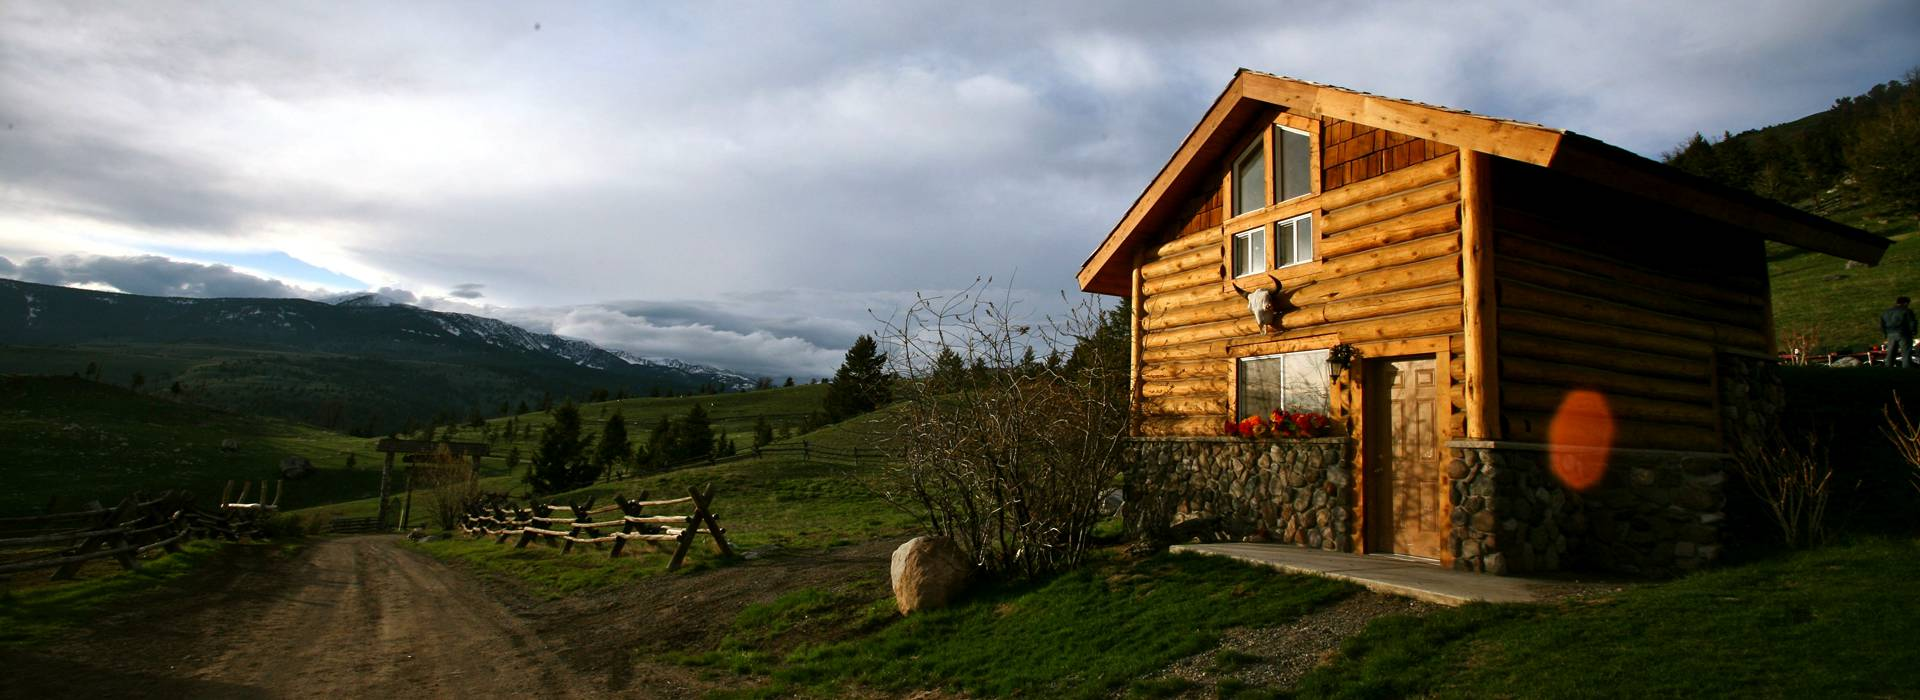 Small Cabin at the Ranch Yellowstone